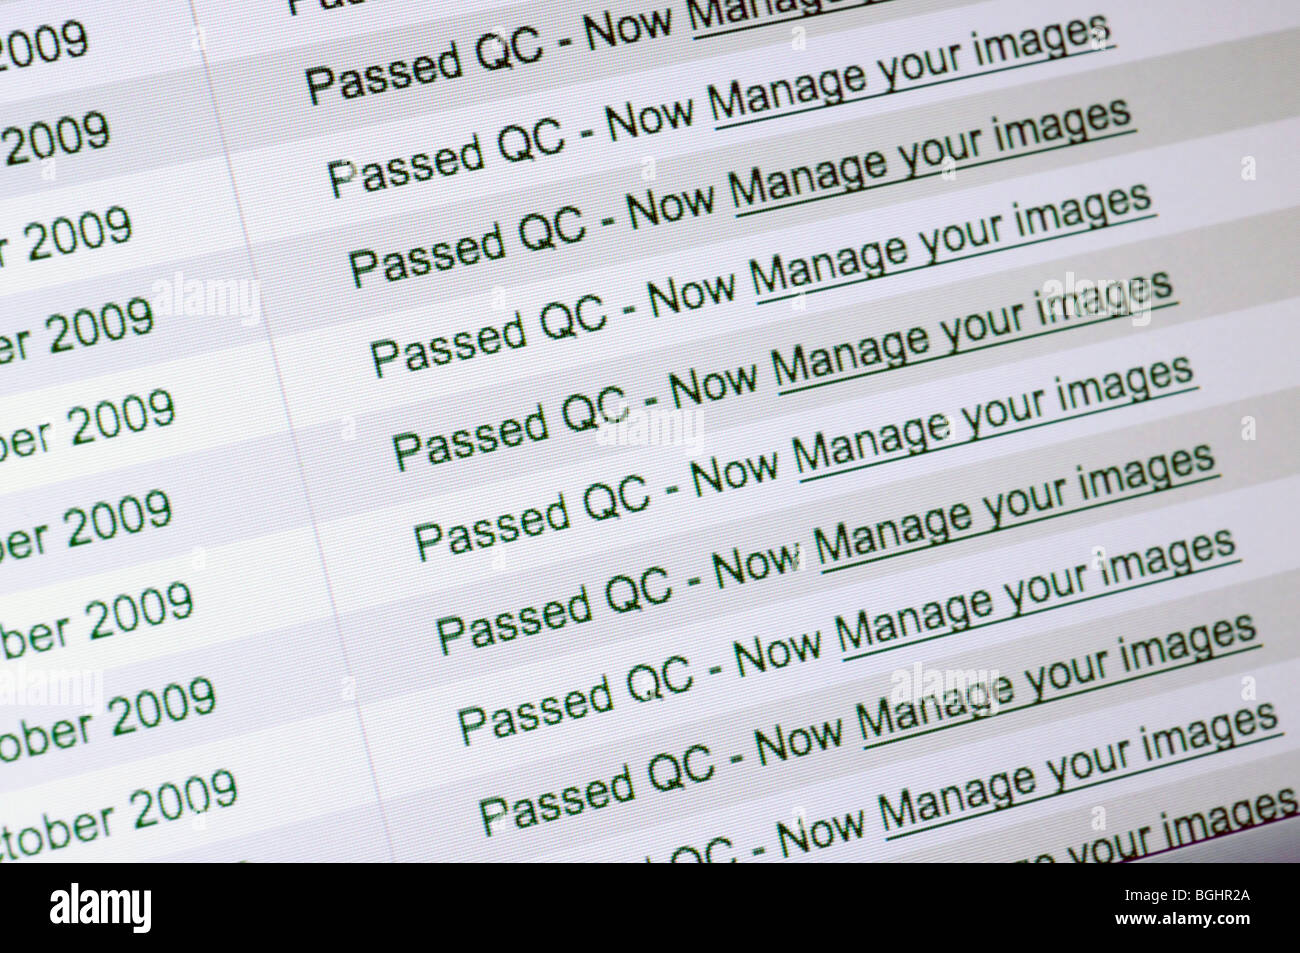 Passed QC Alamy submission status - Stock Image